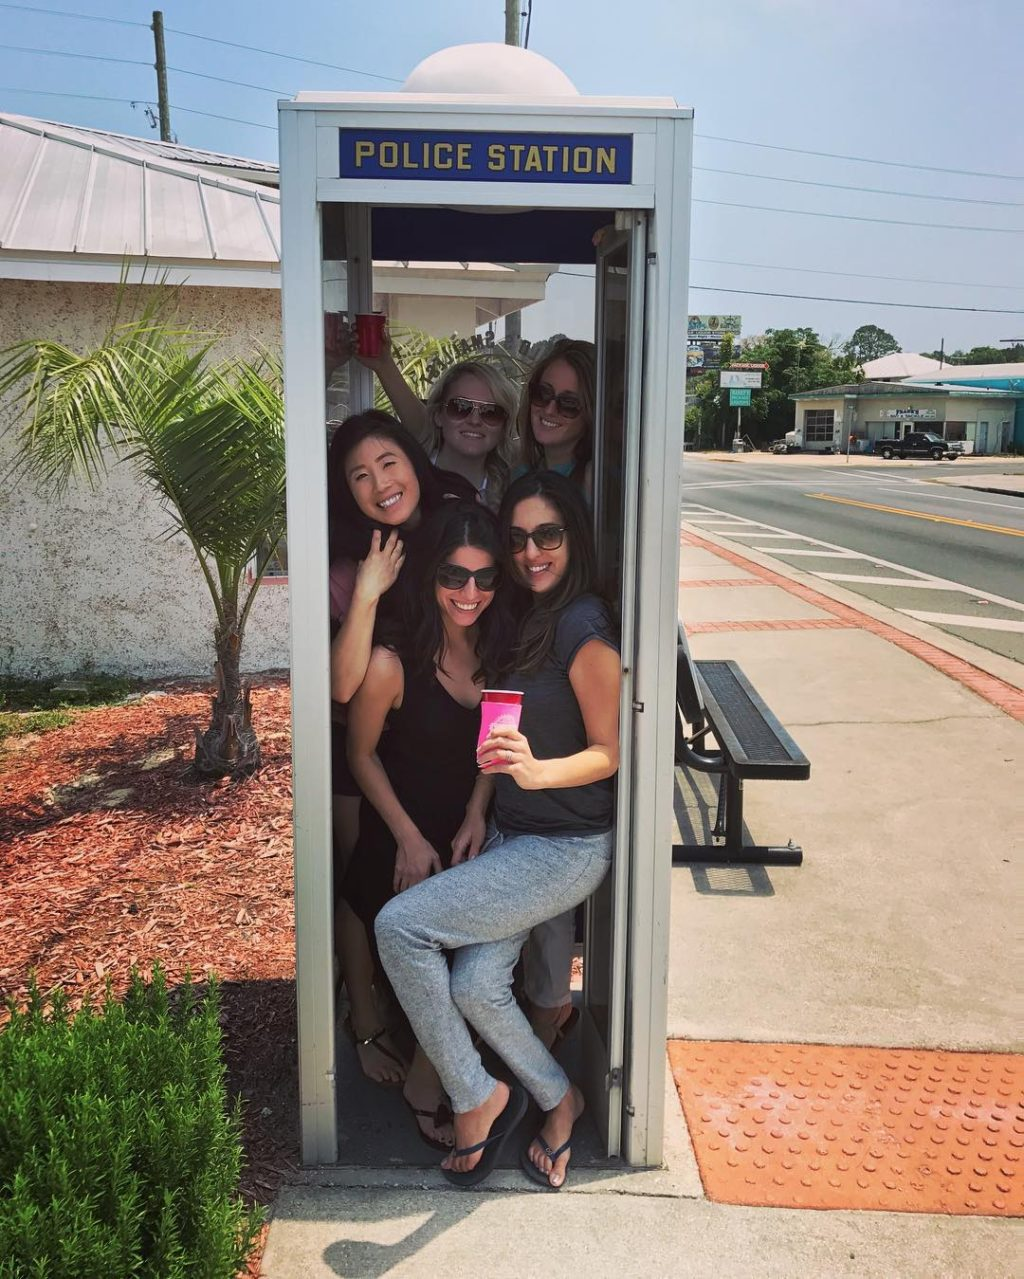 Young Ladies in Smallest Police Station in the World Carrabelle, FL